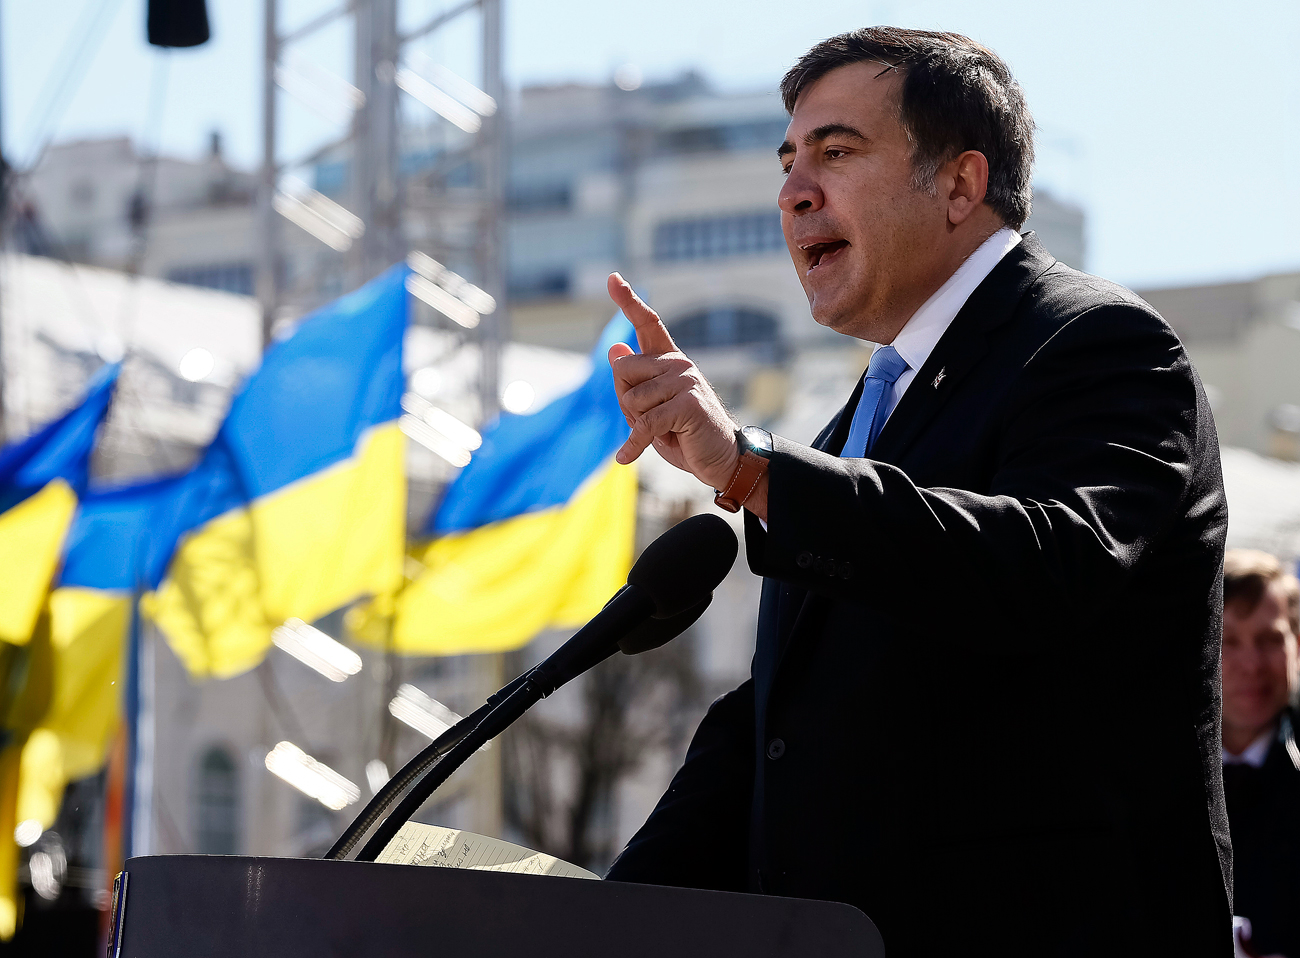 Former Georgian president Mikhail Saakashvili addresses members of a Batkivshchyna party during a meeting in central Kiev.